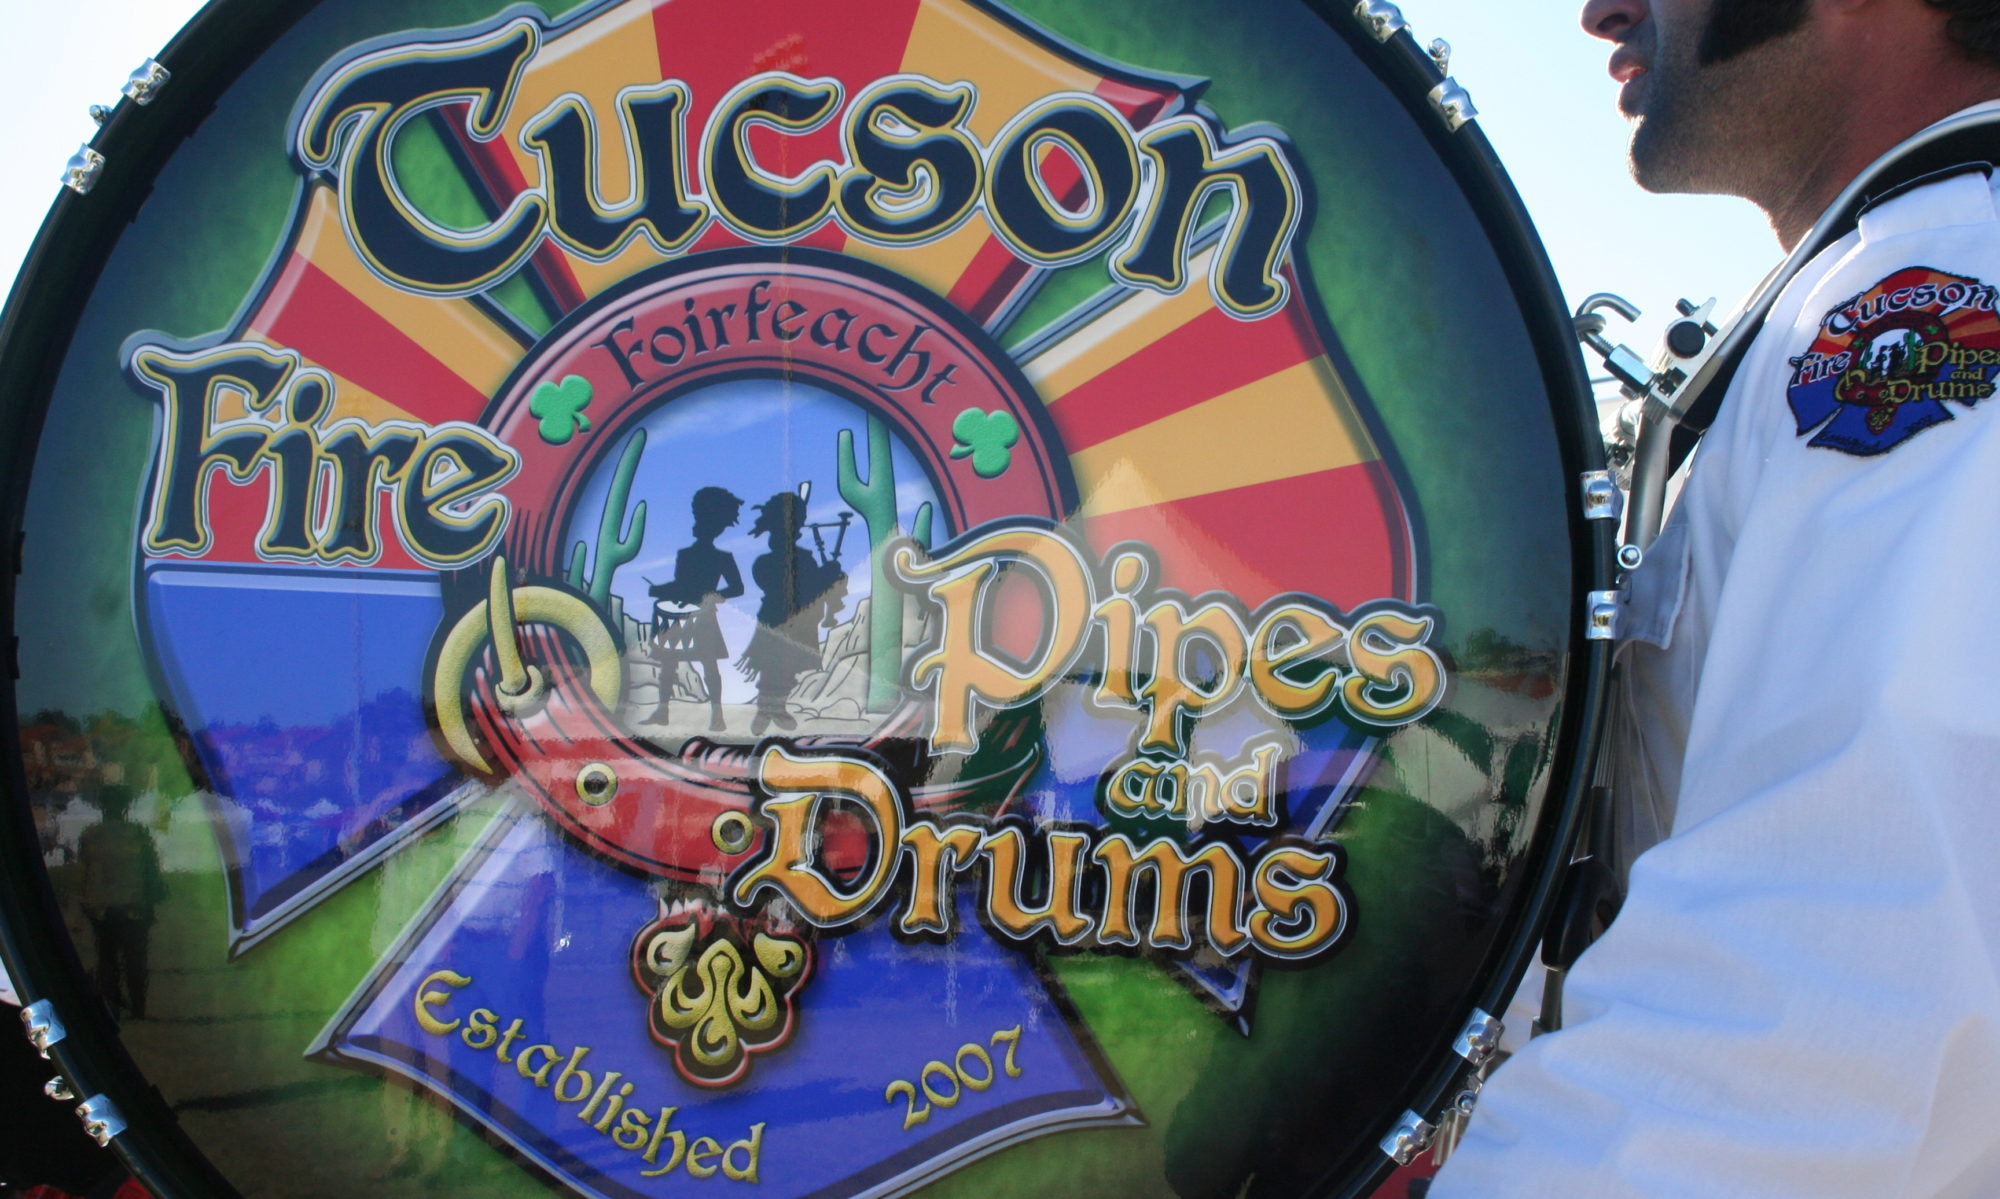 Tucson Fire Pipes and Drums